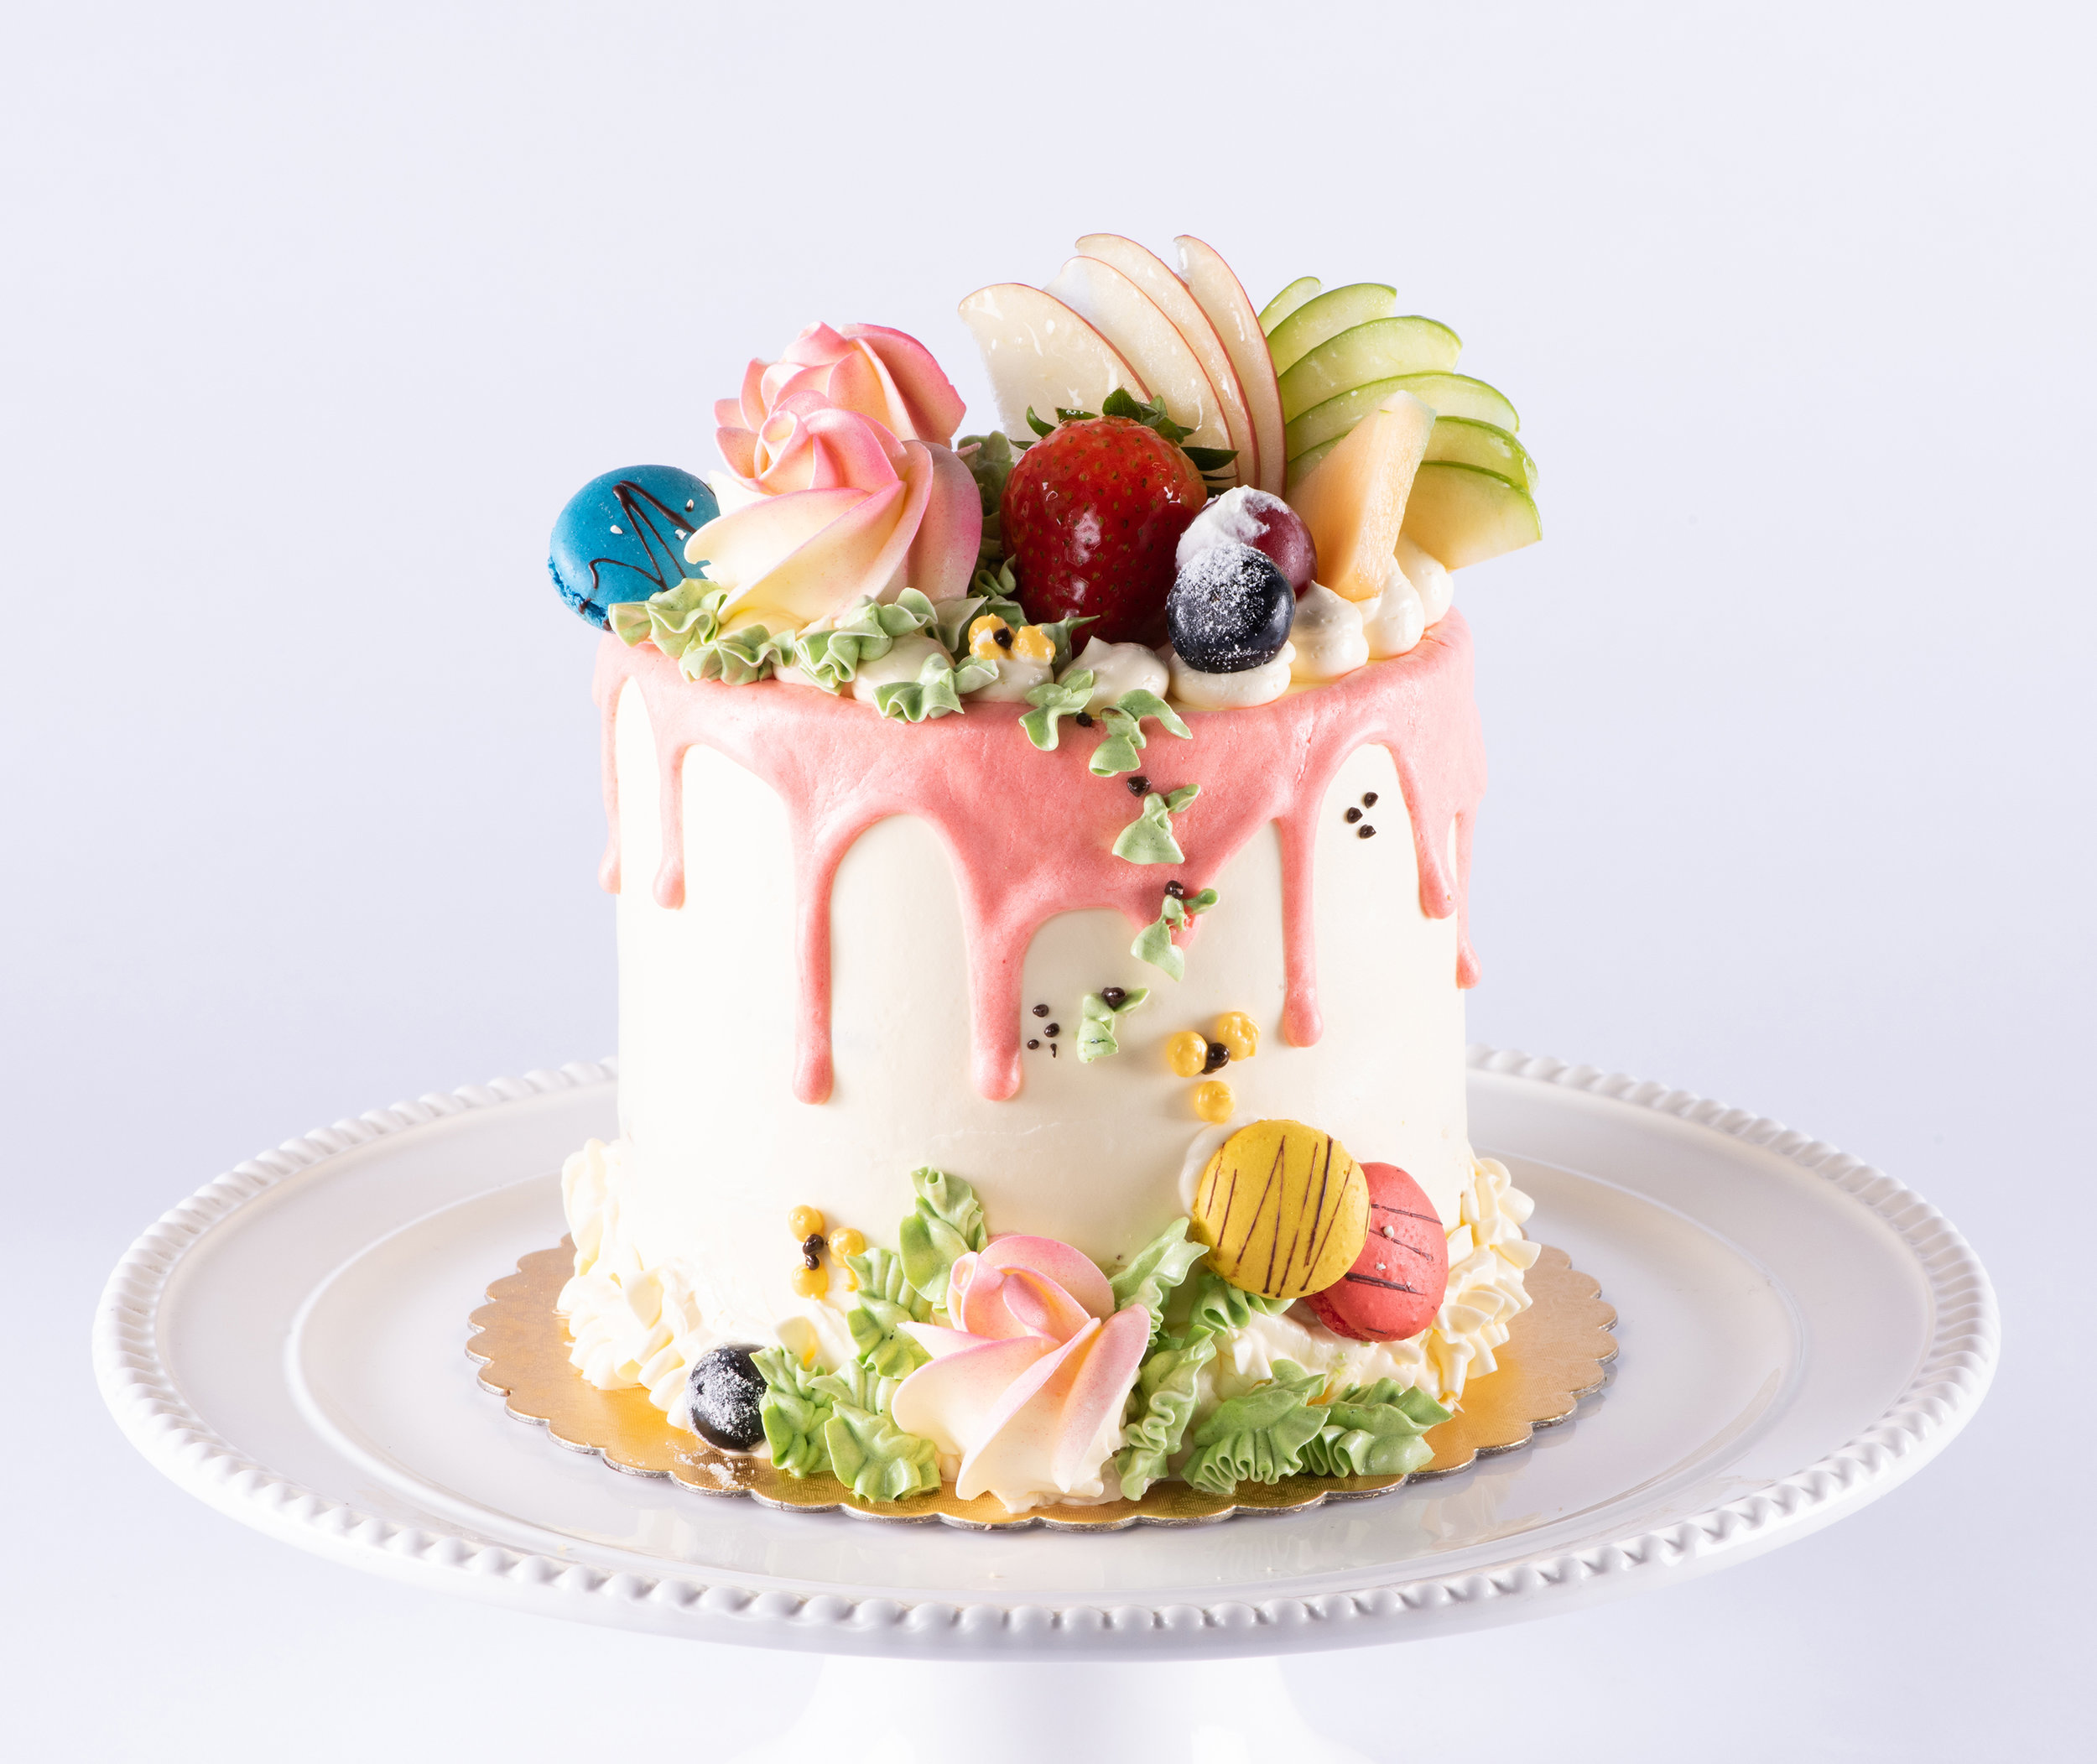 2018_10_10 Patisserie Gateau-1690 SMALL.jpg